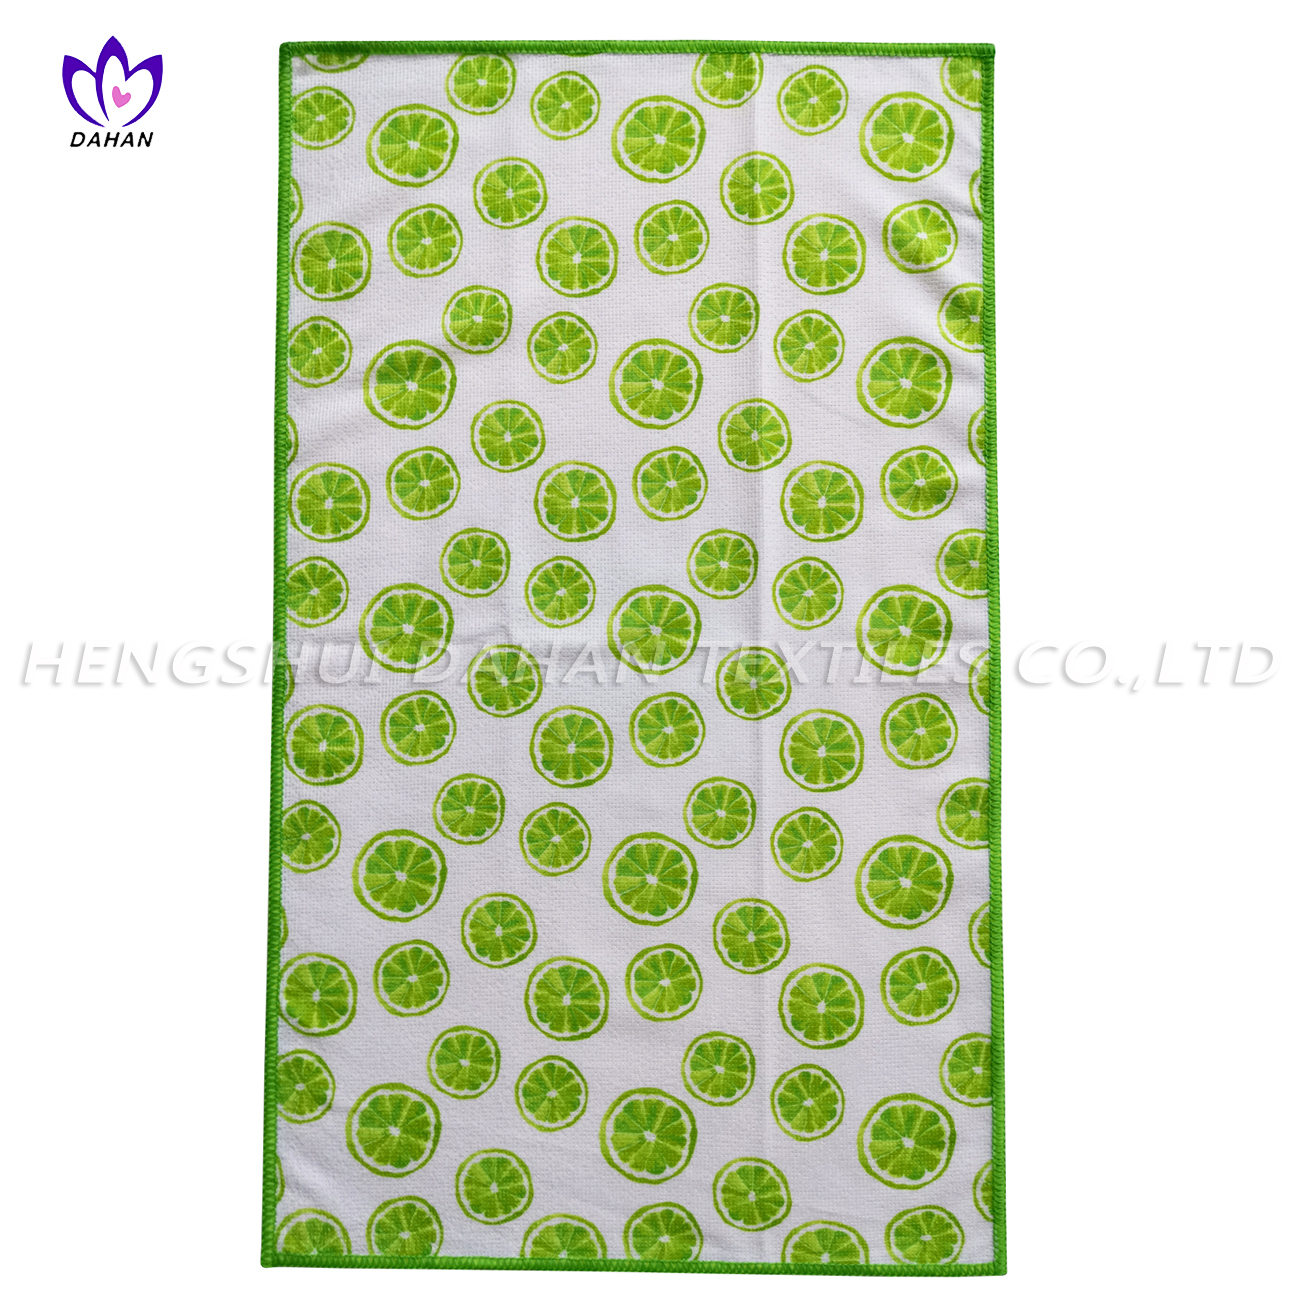 MC117~3 Printing microfiber kitchen towel.